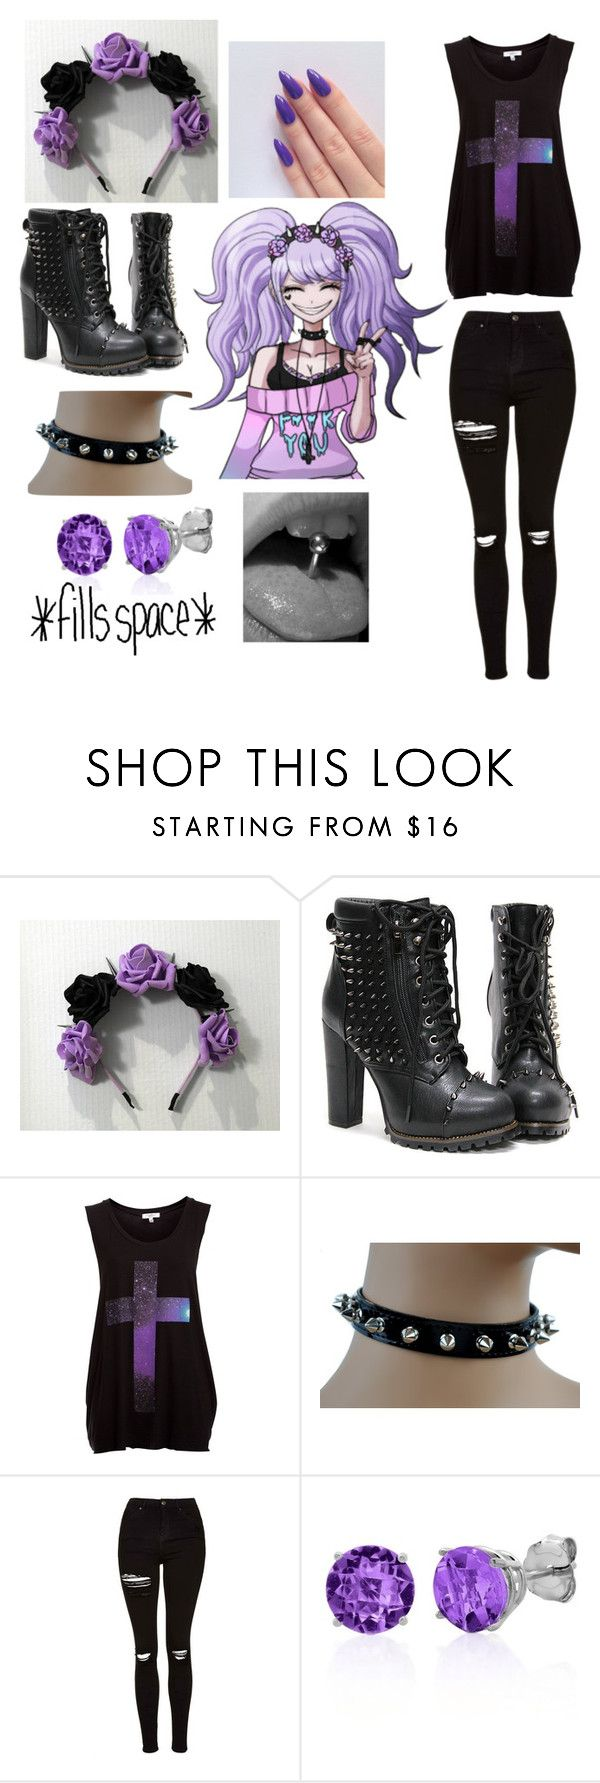 """""""Pastel goth Junko inspired outfit"""" by supernova-1000 ❤ liked on Polyvore featuring Topshop and Belk & Co."""